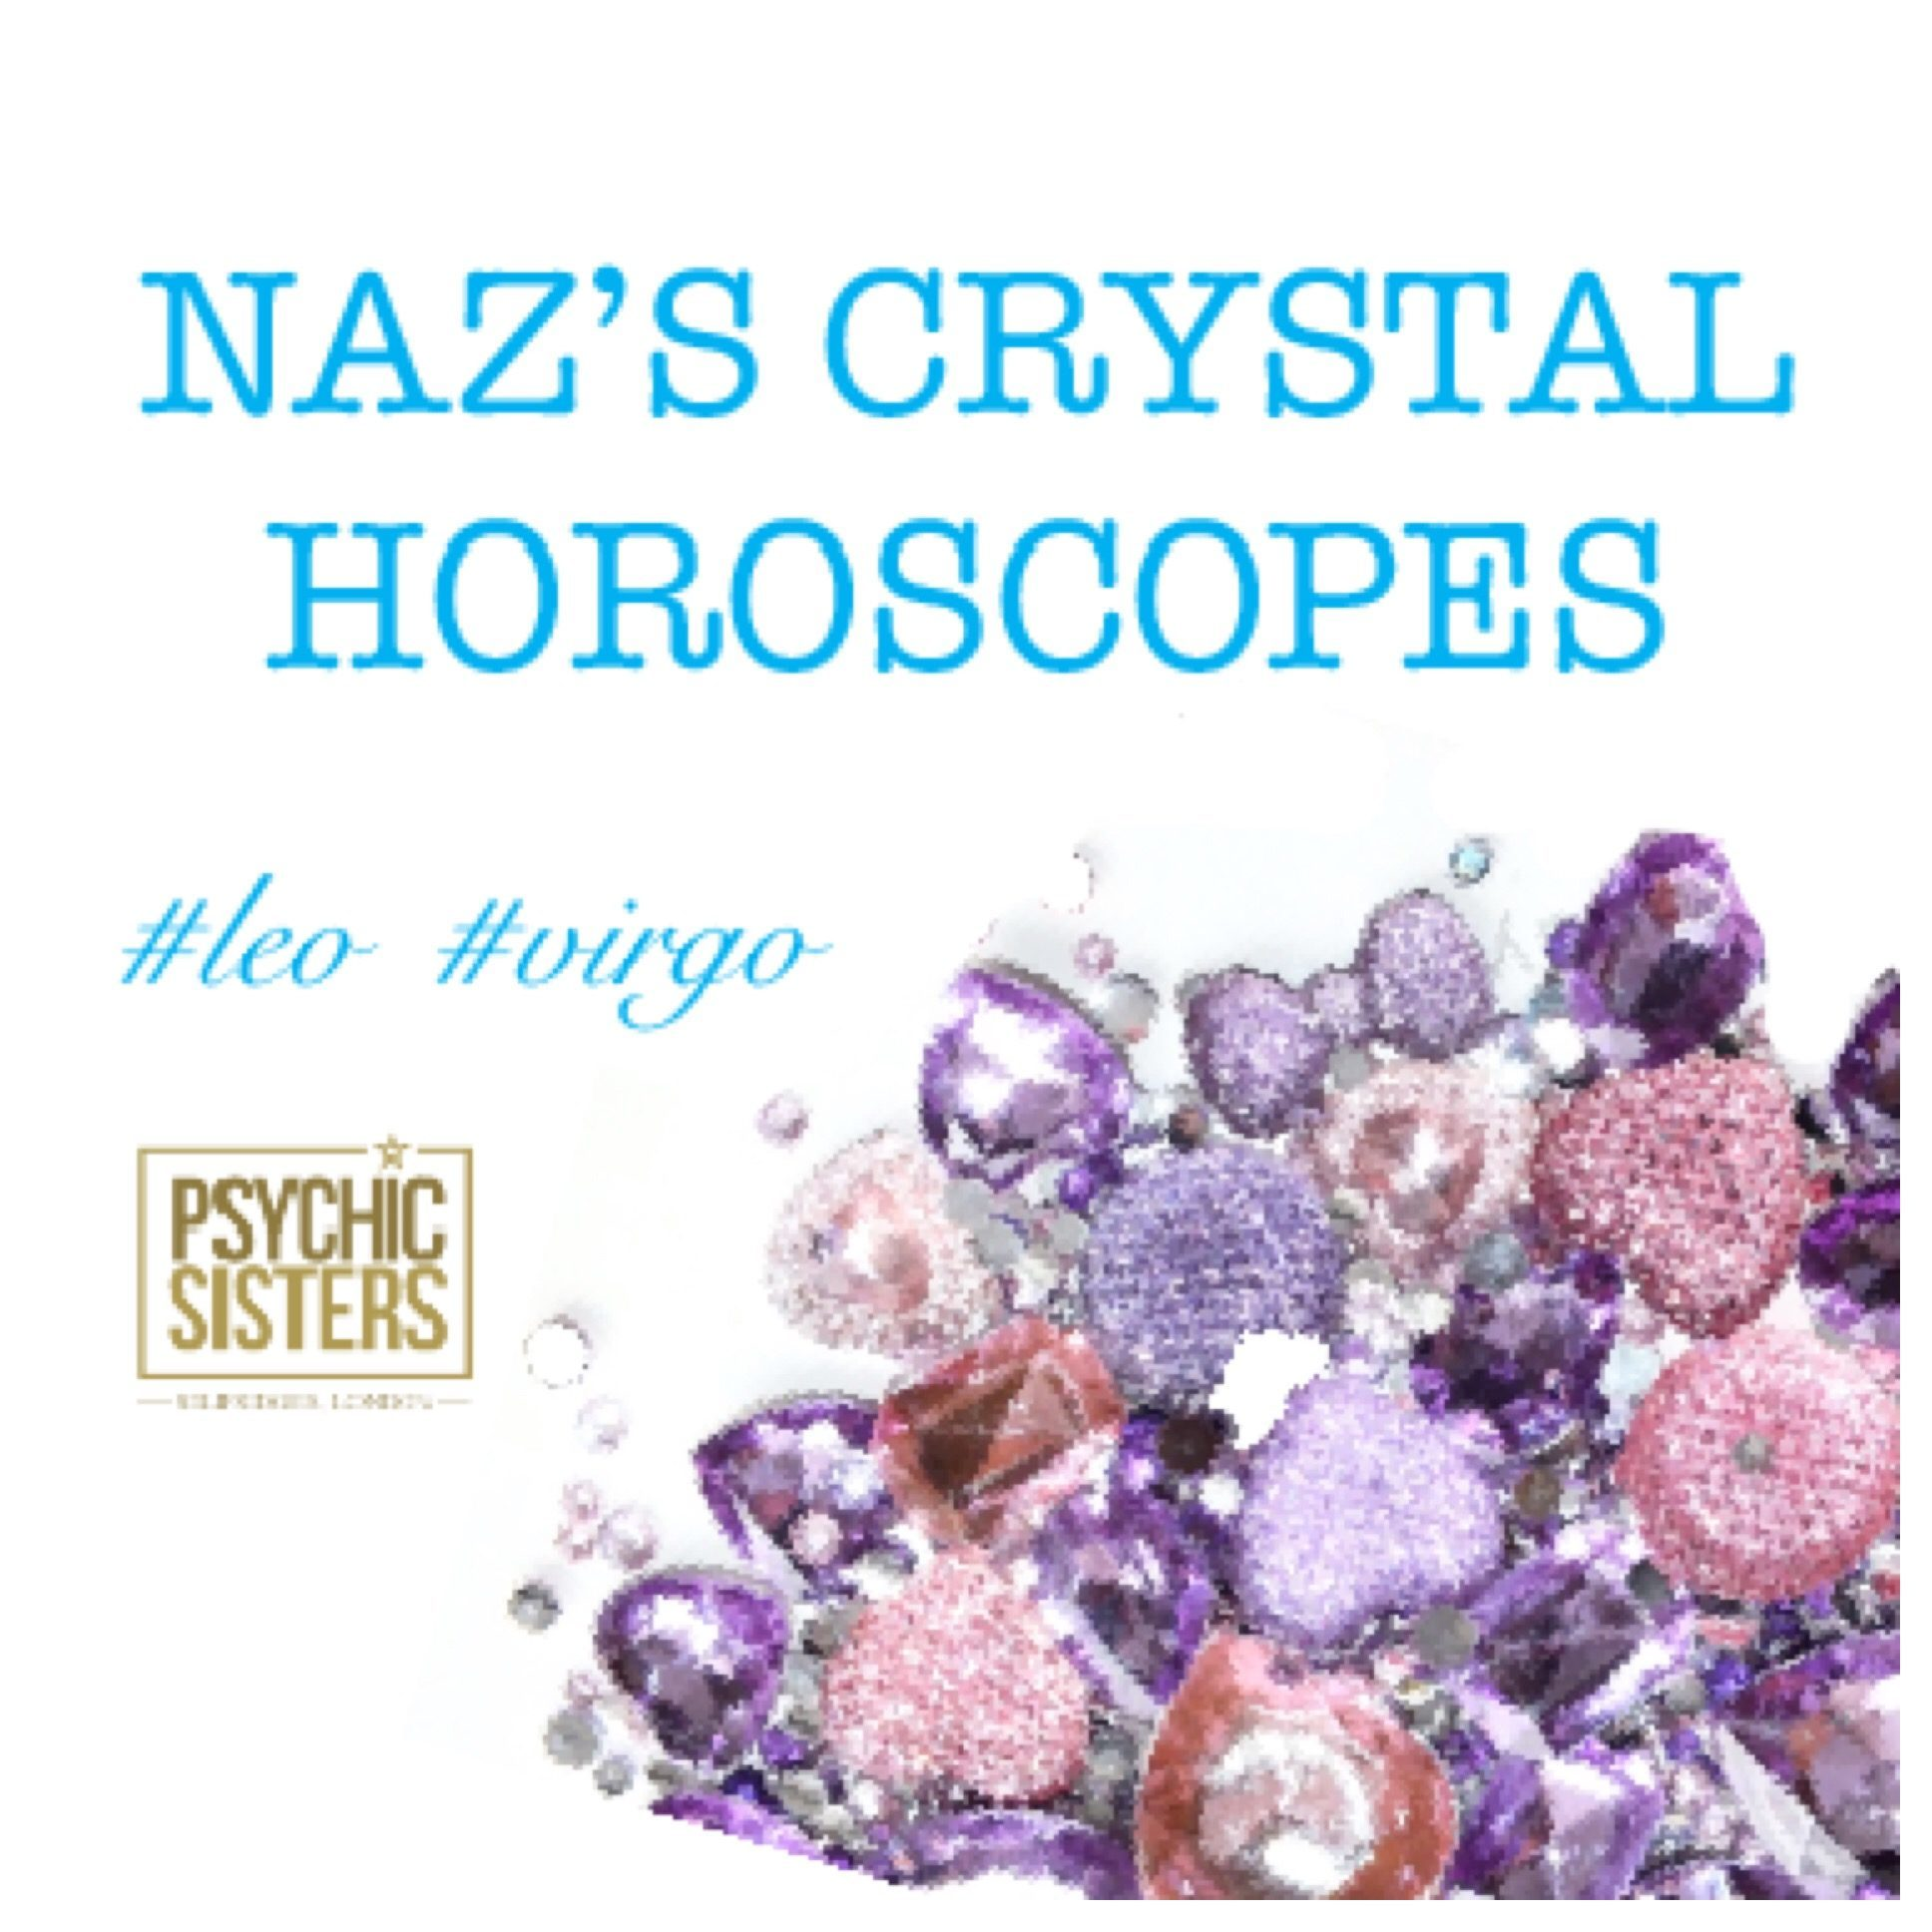 Naz's crystal horoscopes 6th - 12th May 2018